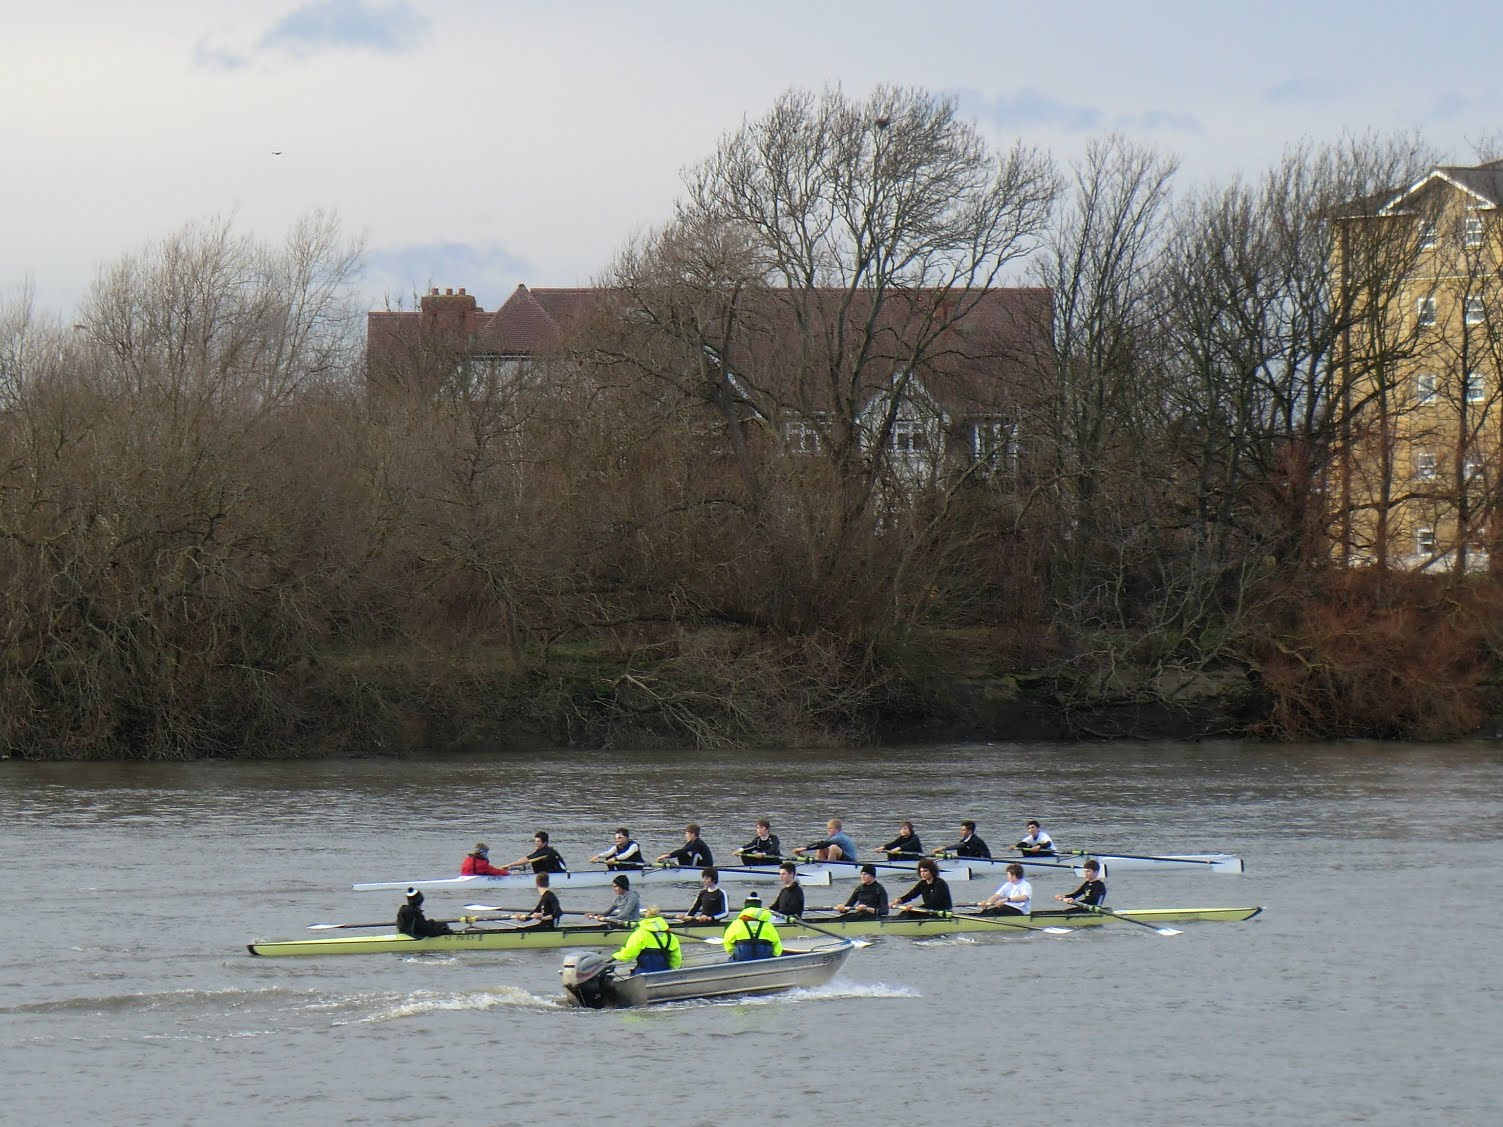 CIMG2591 Rowing eights on the Thames